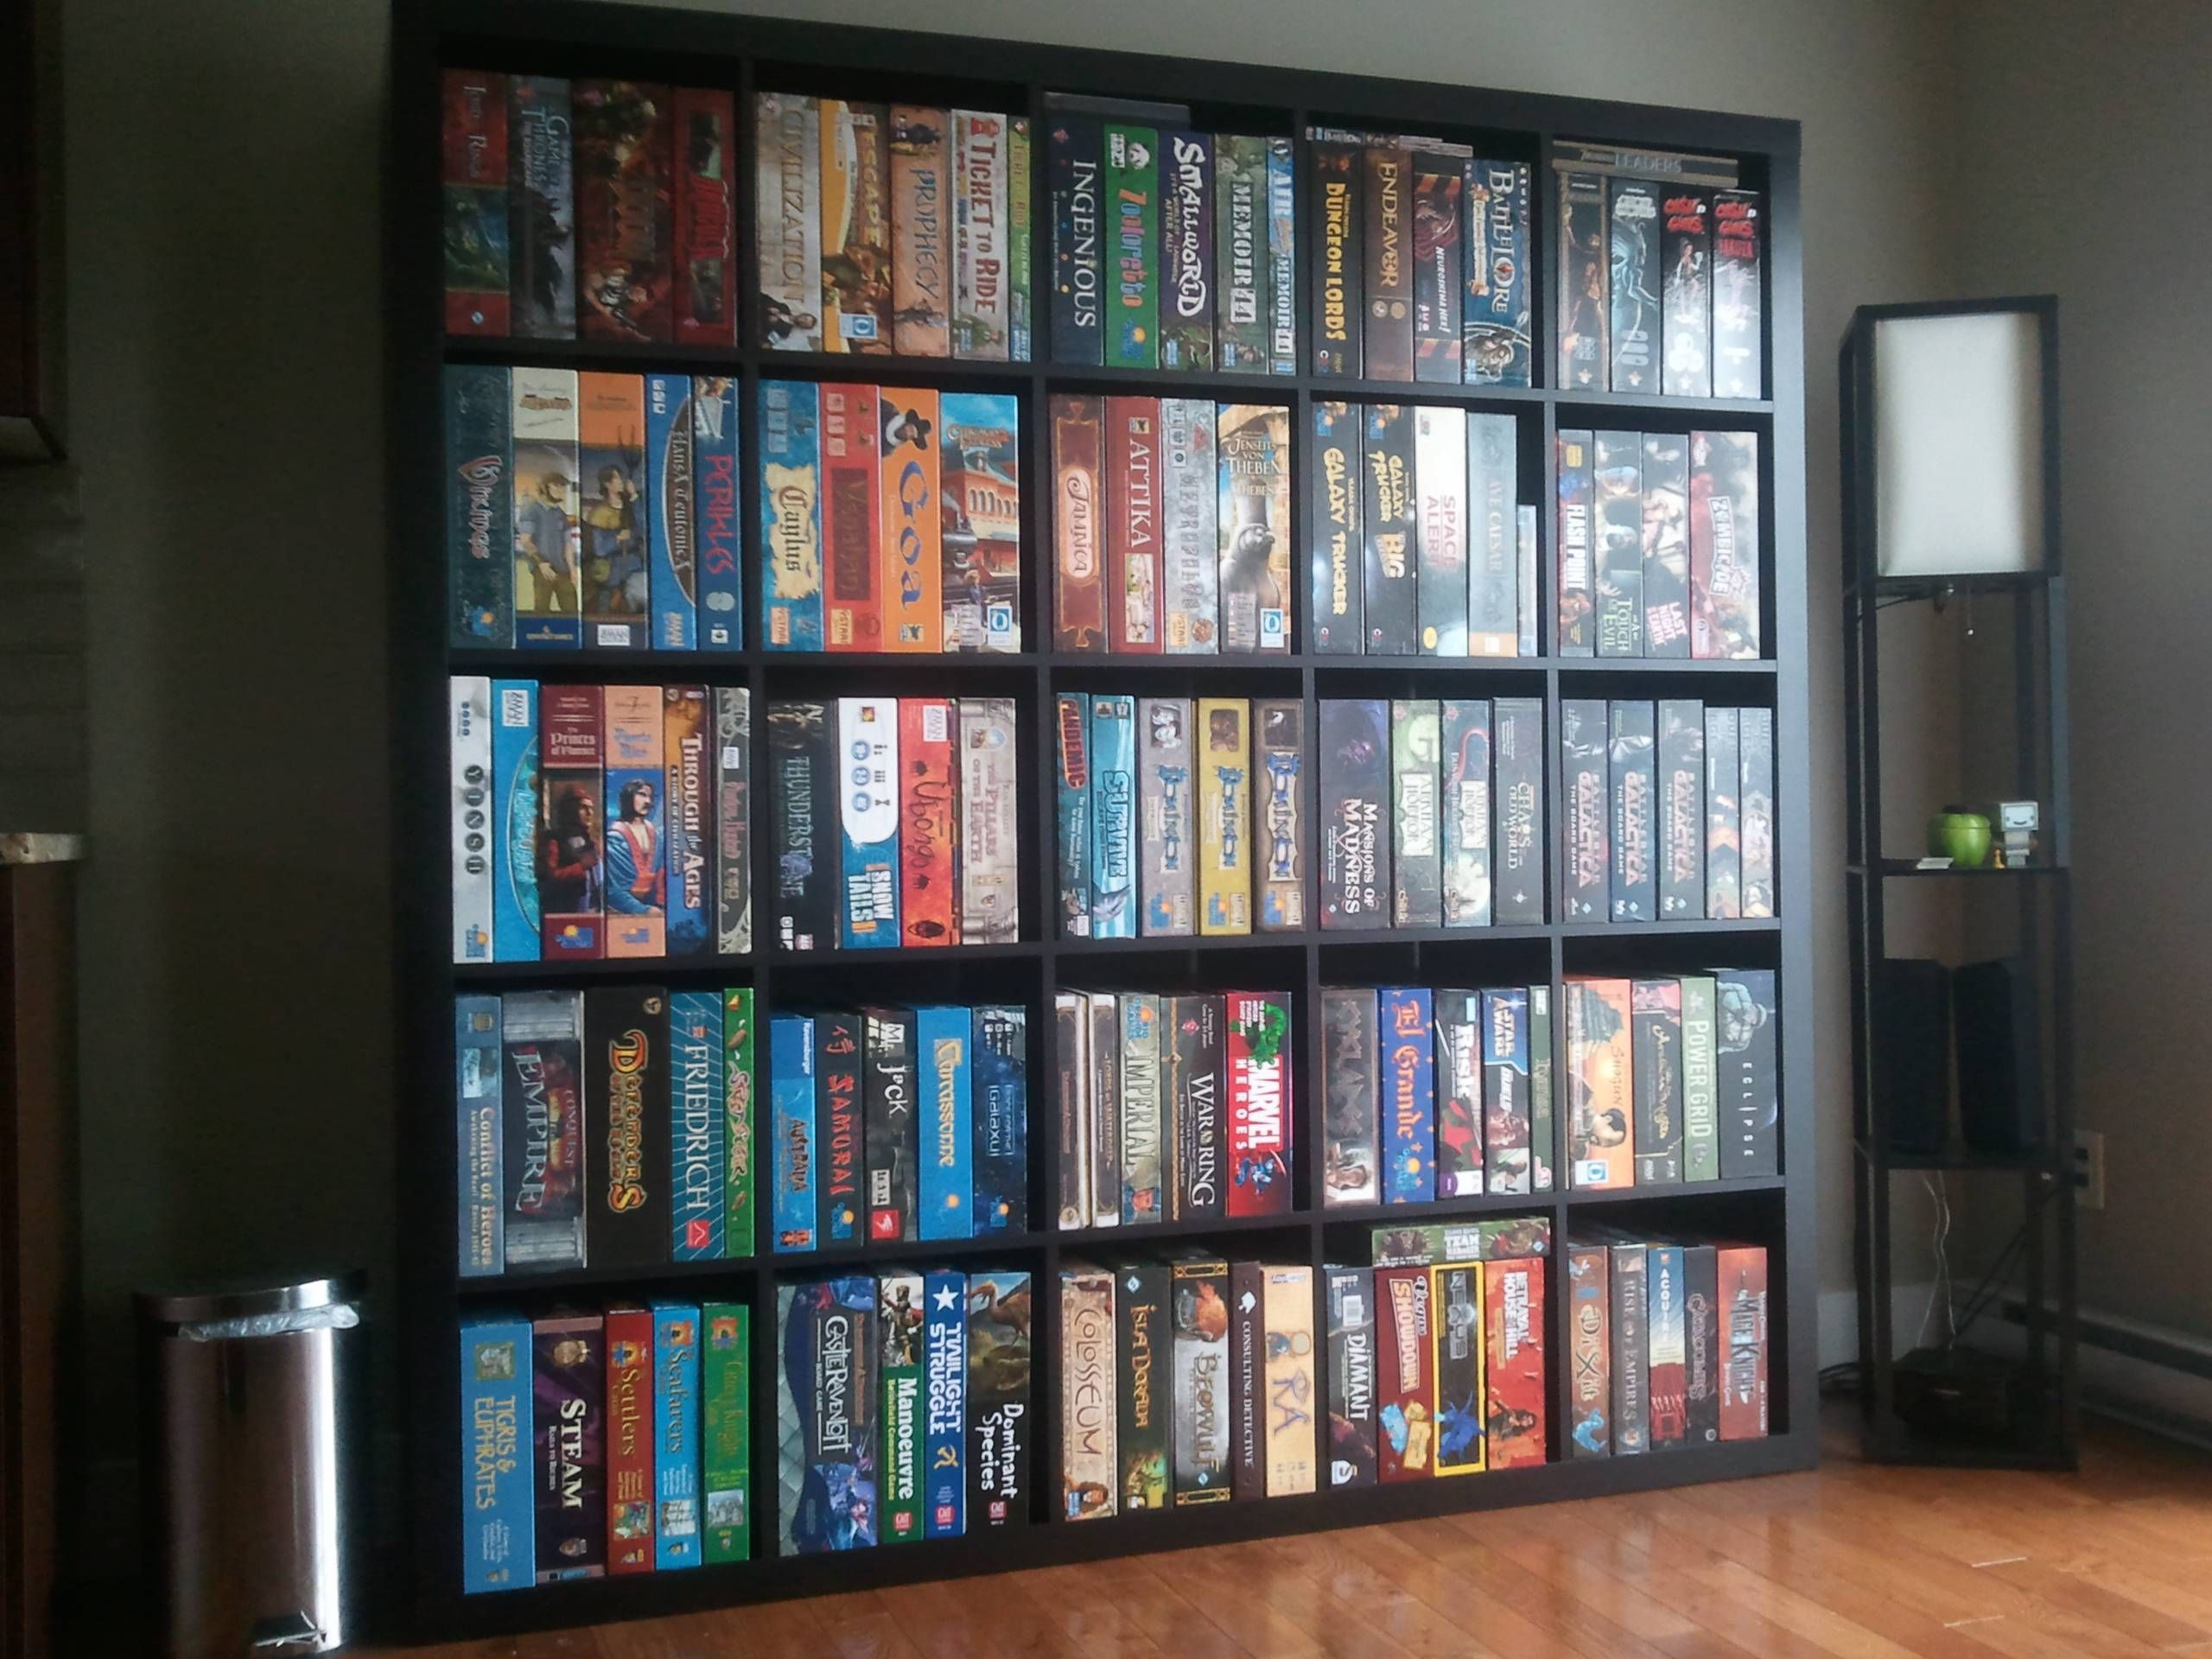 Comc Just Picked Up An Expedit Bookcase From Ikea Board